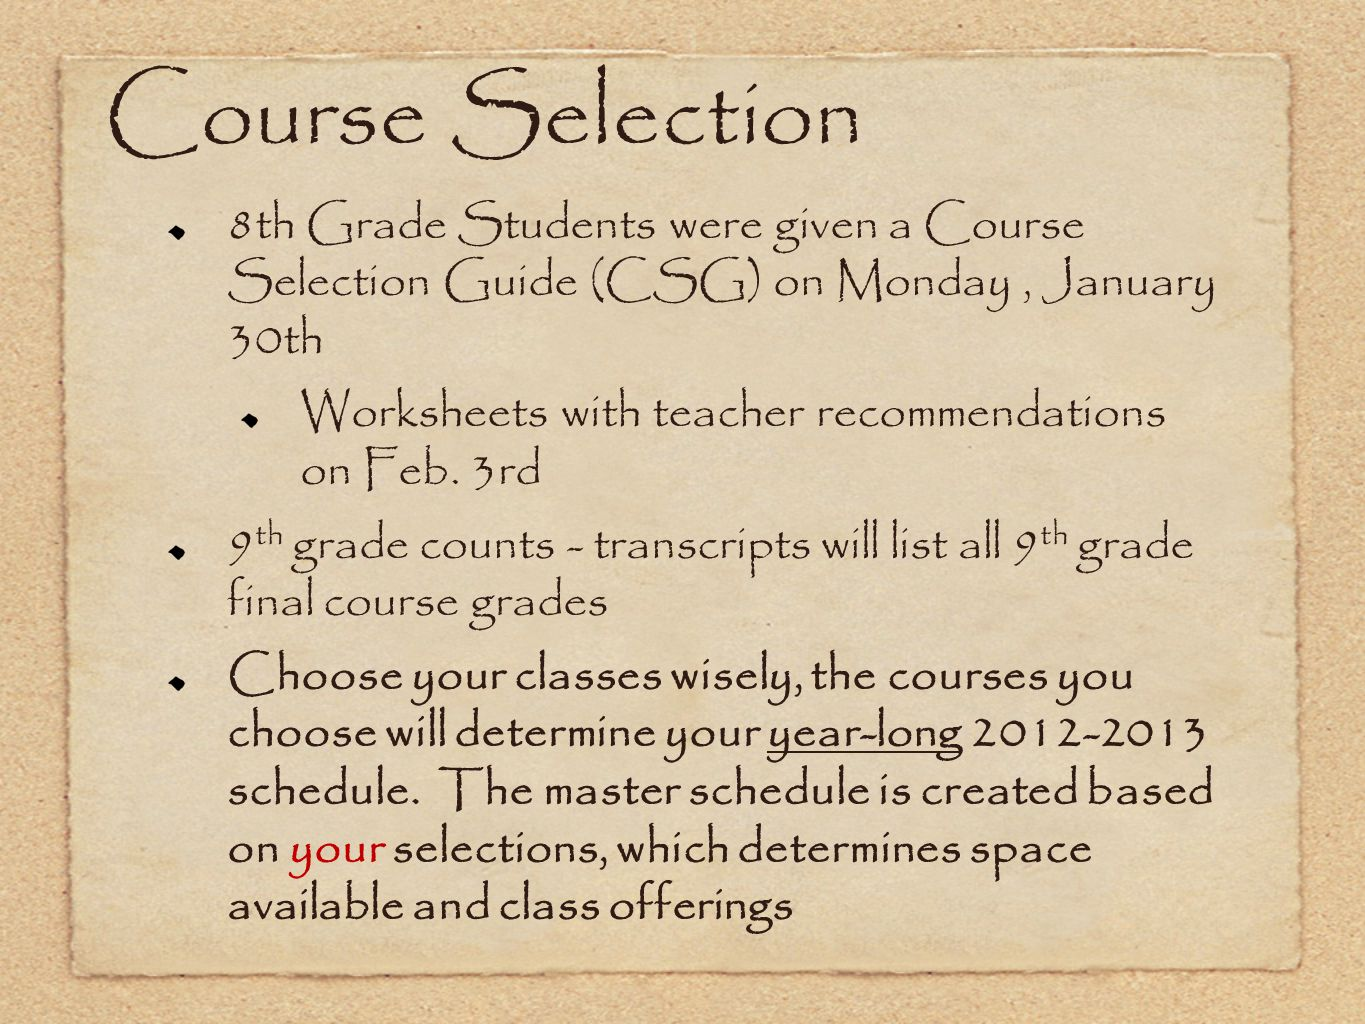 Course Selection 8th Grade Students were given a Course Selection Guide (CSG) on Monday , January 30th.